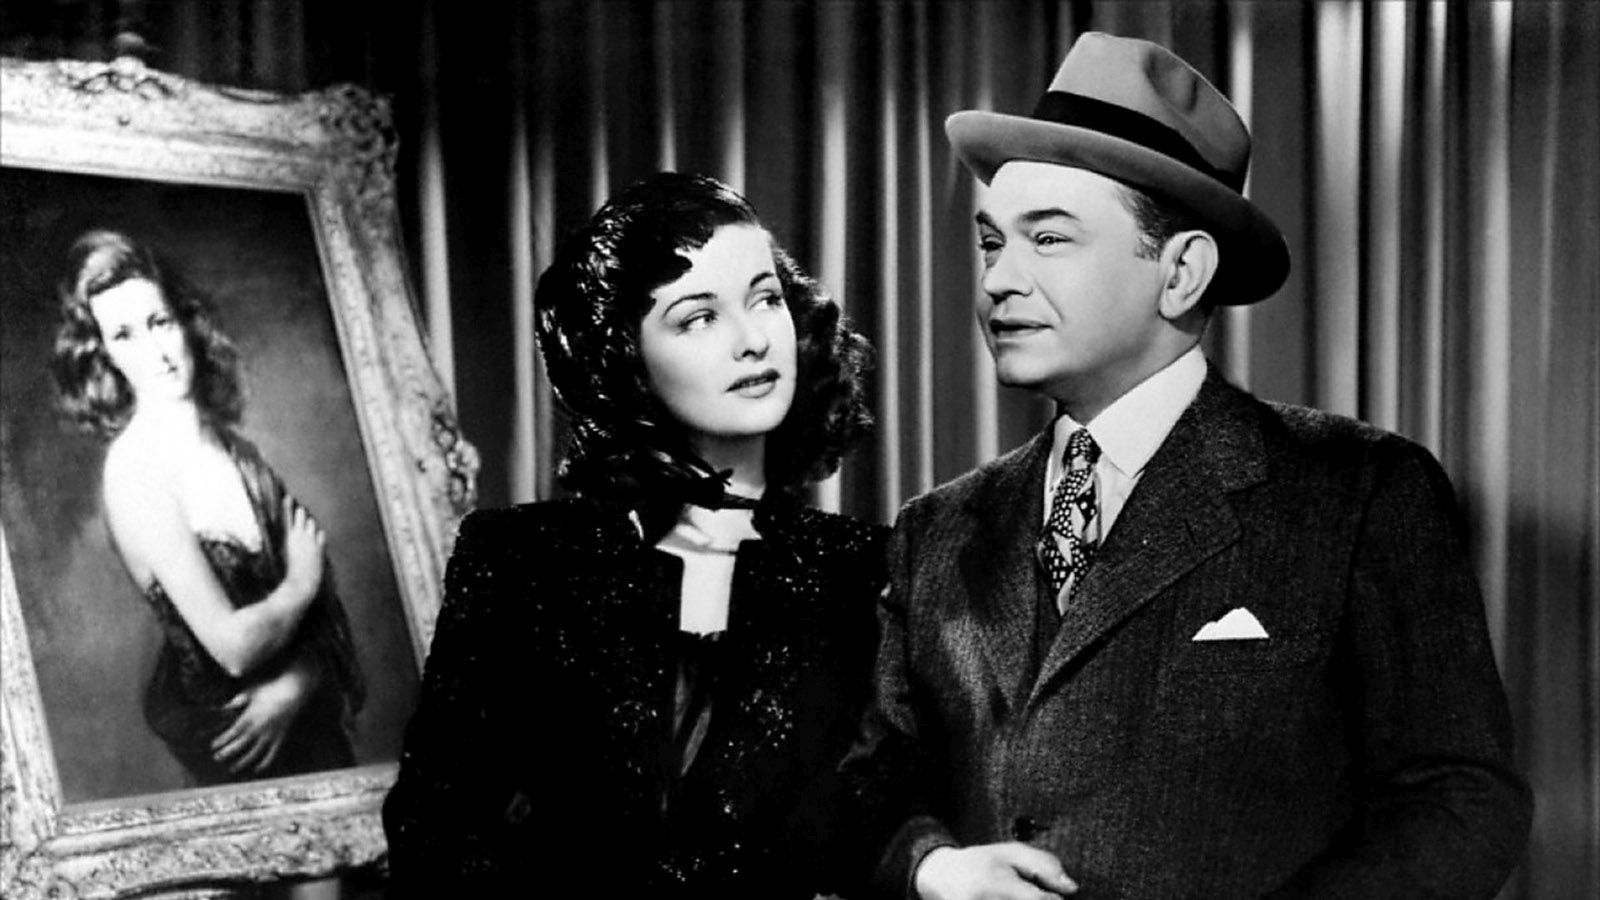 edward g. robinson & joan bennett in The Woman in the Window